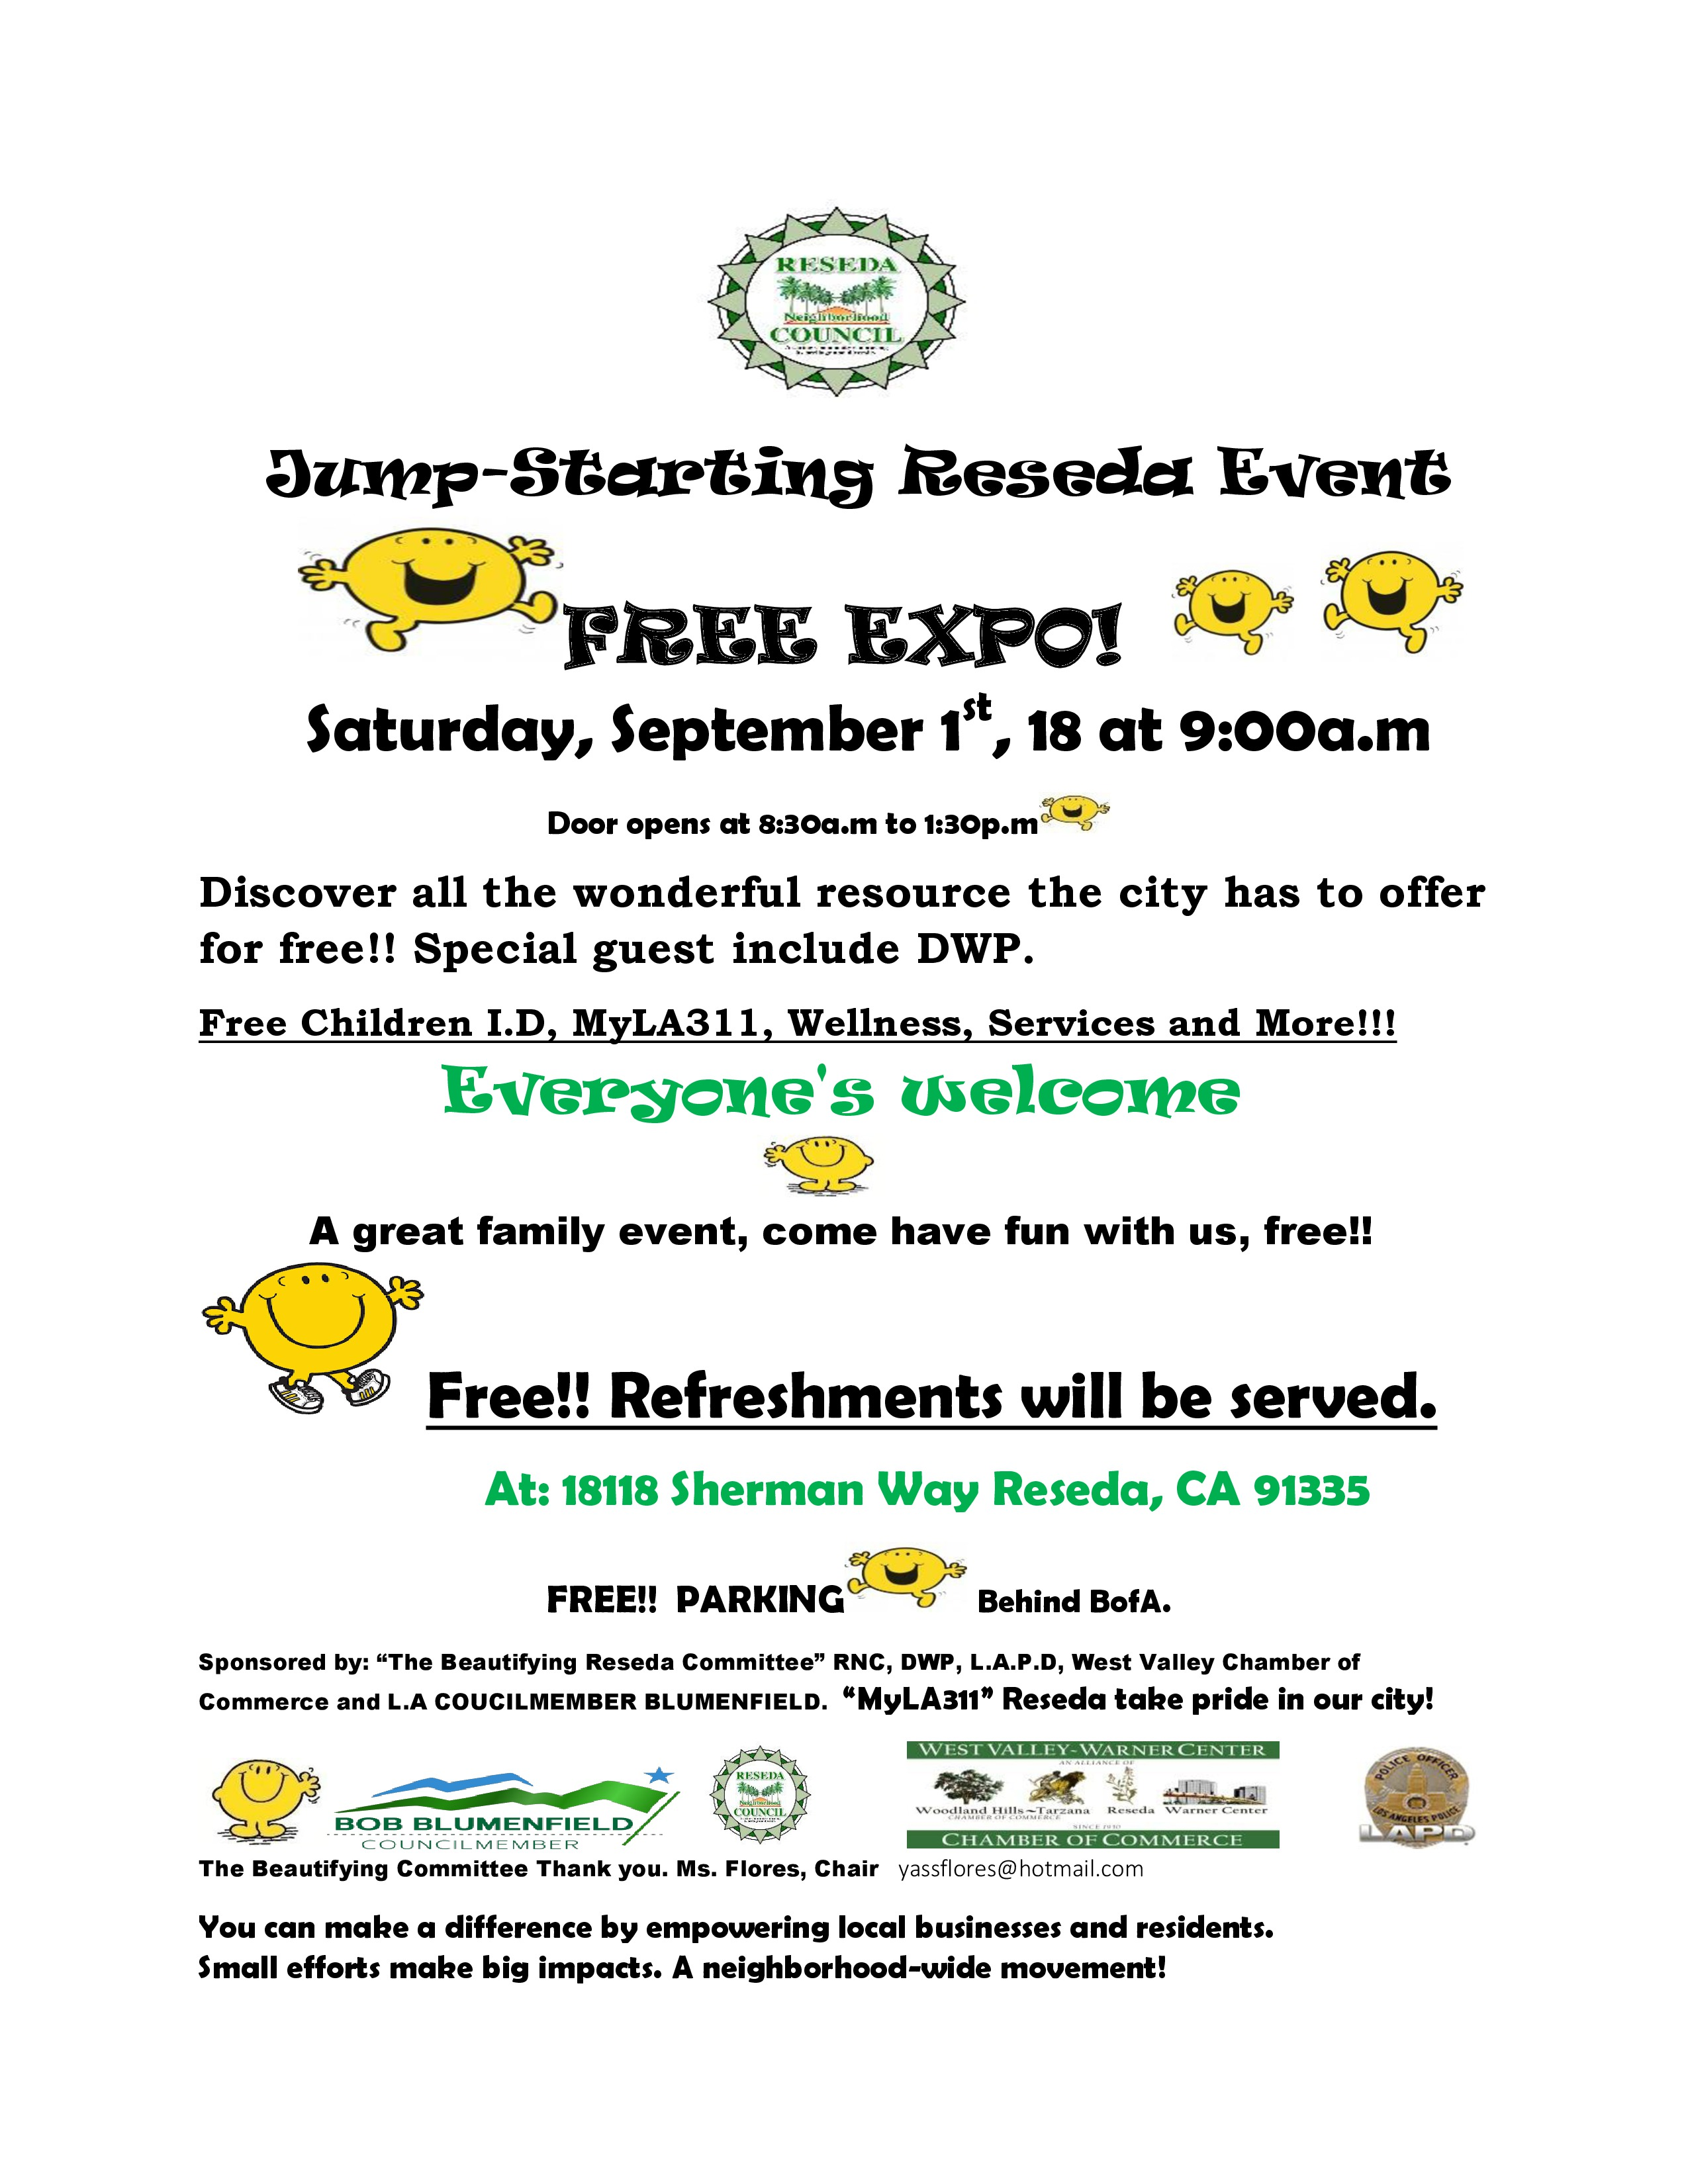 EXPO_Jump-starting_Reseda_Event_9-1-18-page-0.jpg